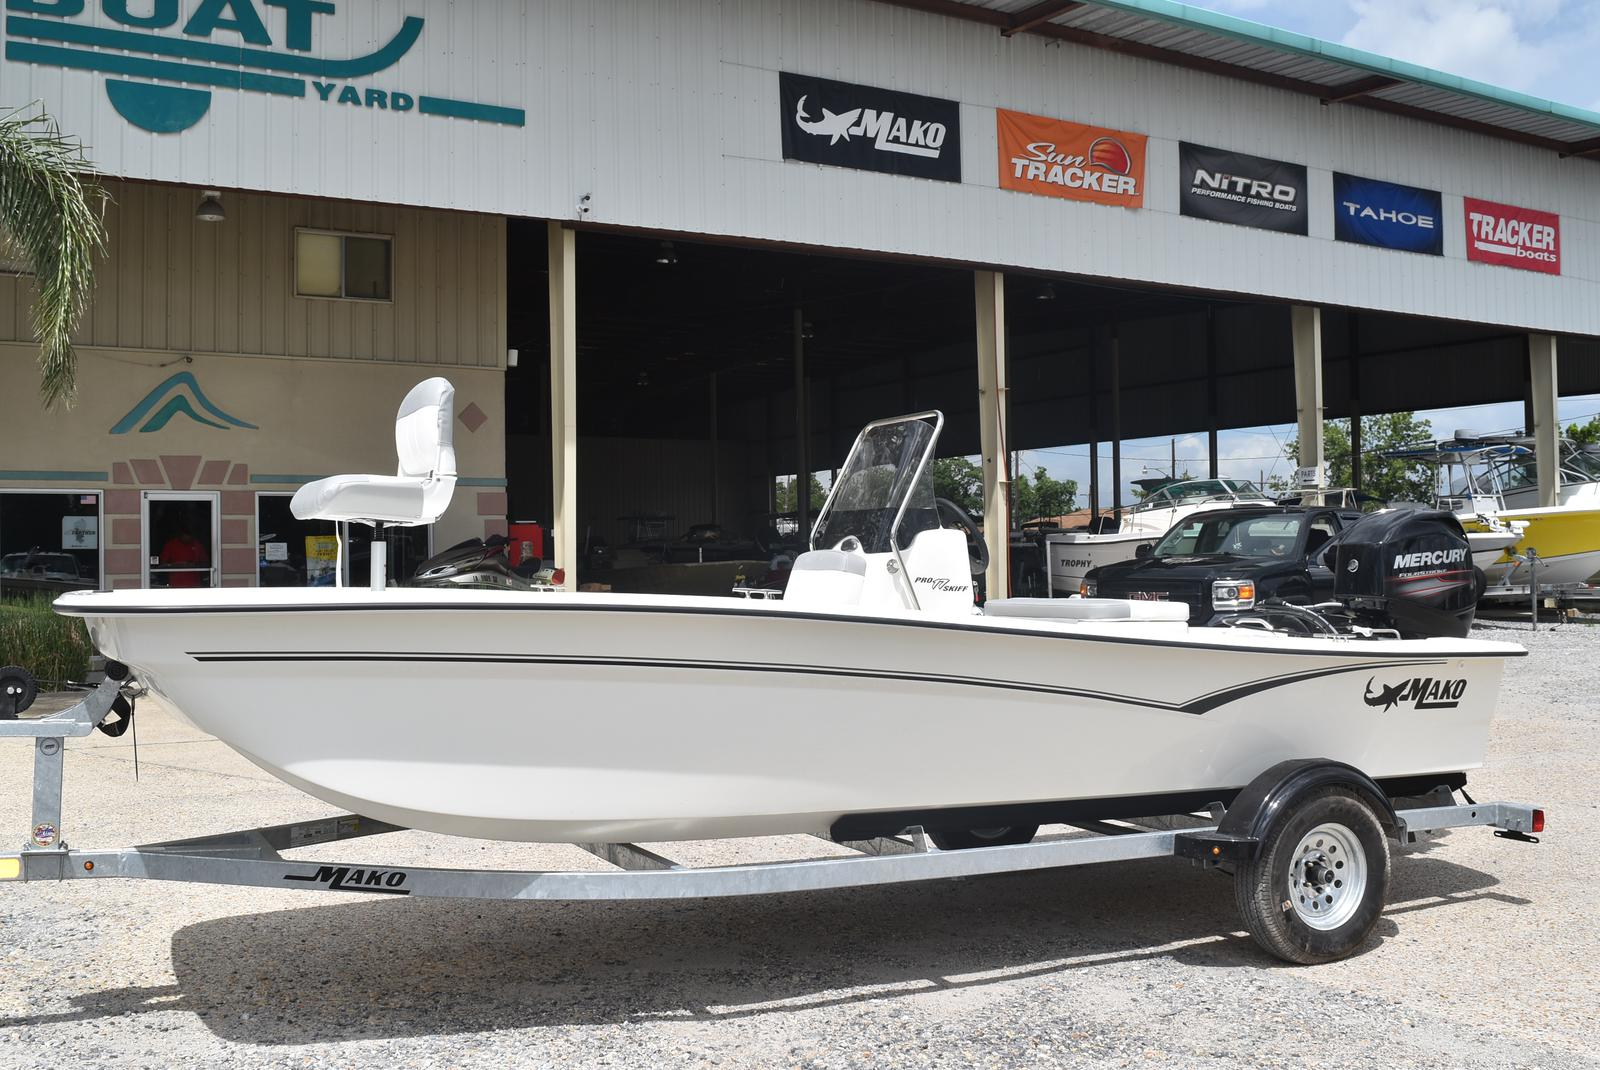 2020 Mako boat for sale, model of the boat is Pro Skiff 17, 75 ELPT & Image # 139 of 702